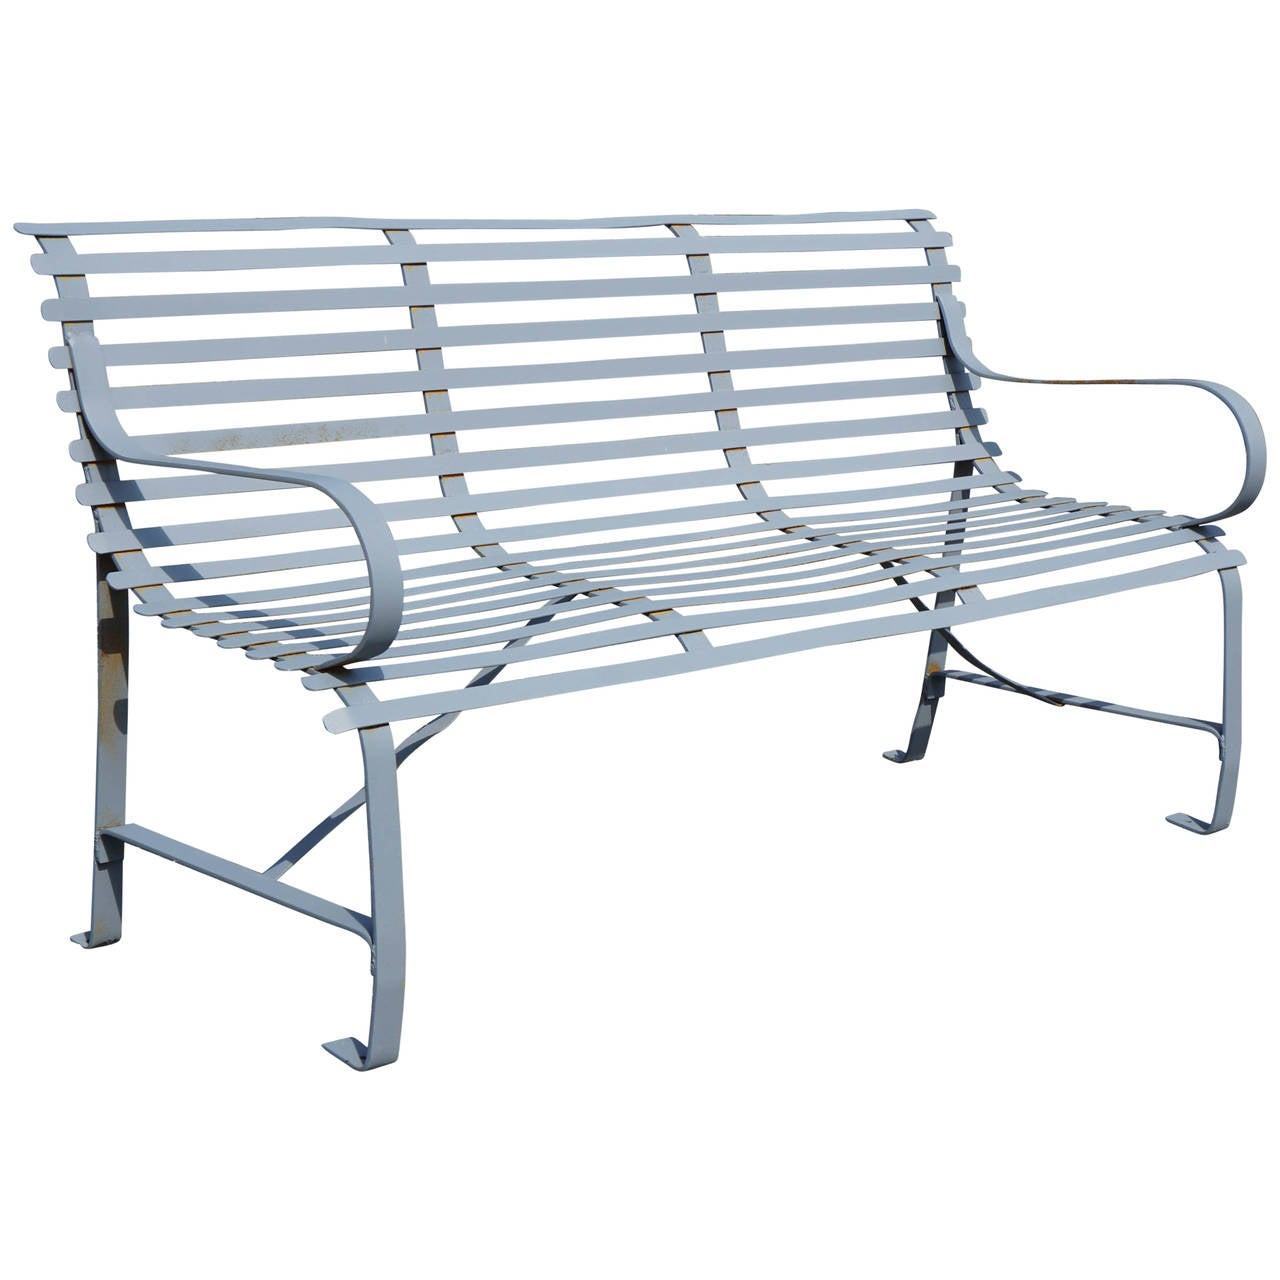 Wrought Iron Patio Bench Wrought Iron Benches Chairs Wrought Iron Bench Metal Seating Waymar